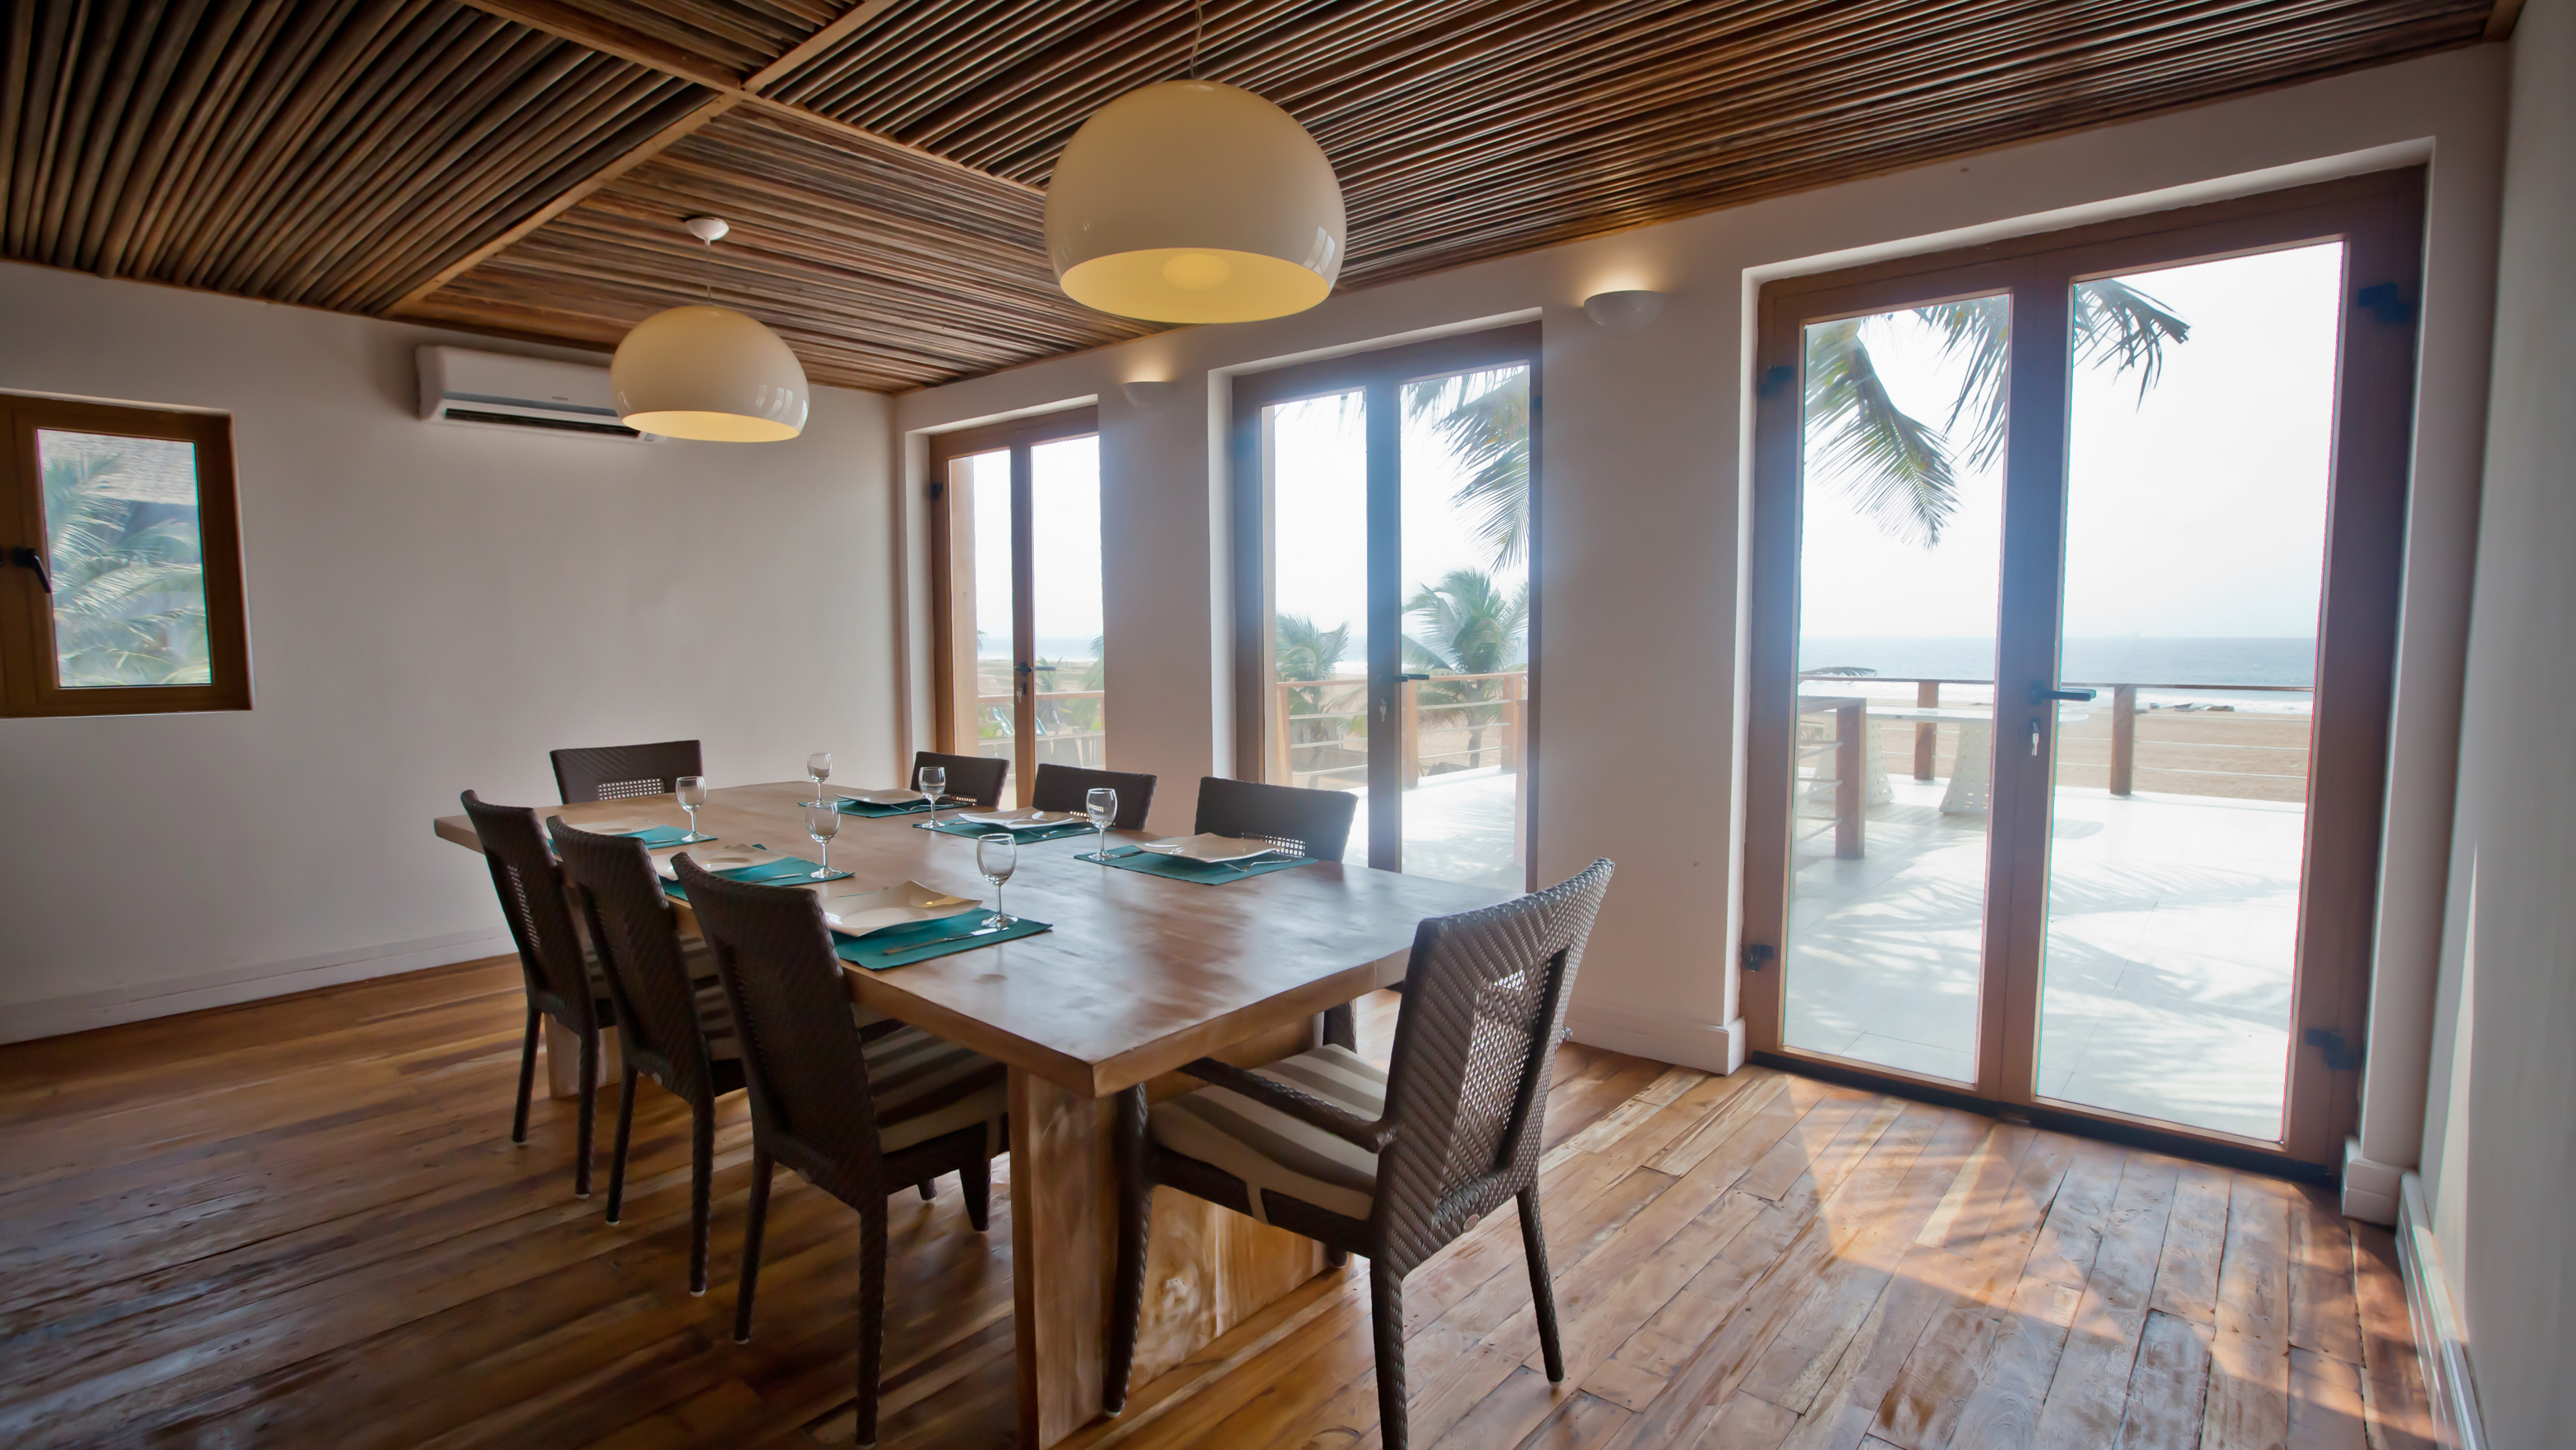 PRIVATE BEACH HOUSE INTERIOR 4